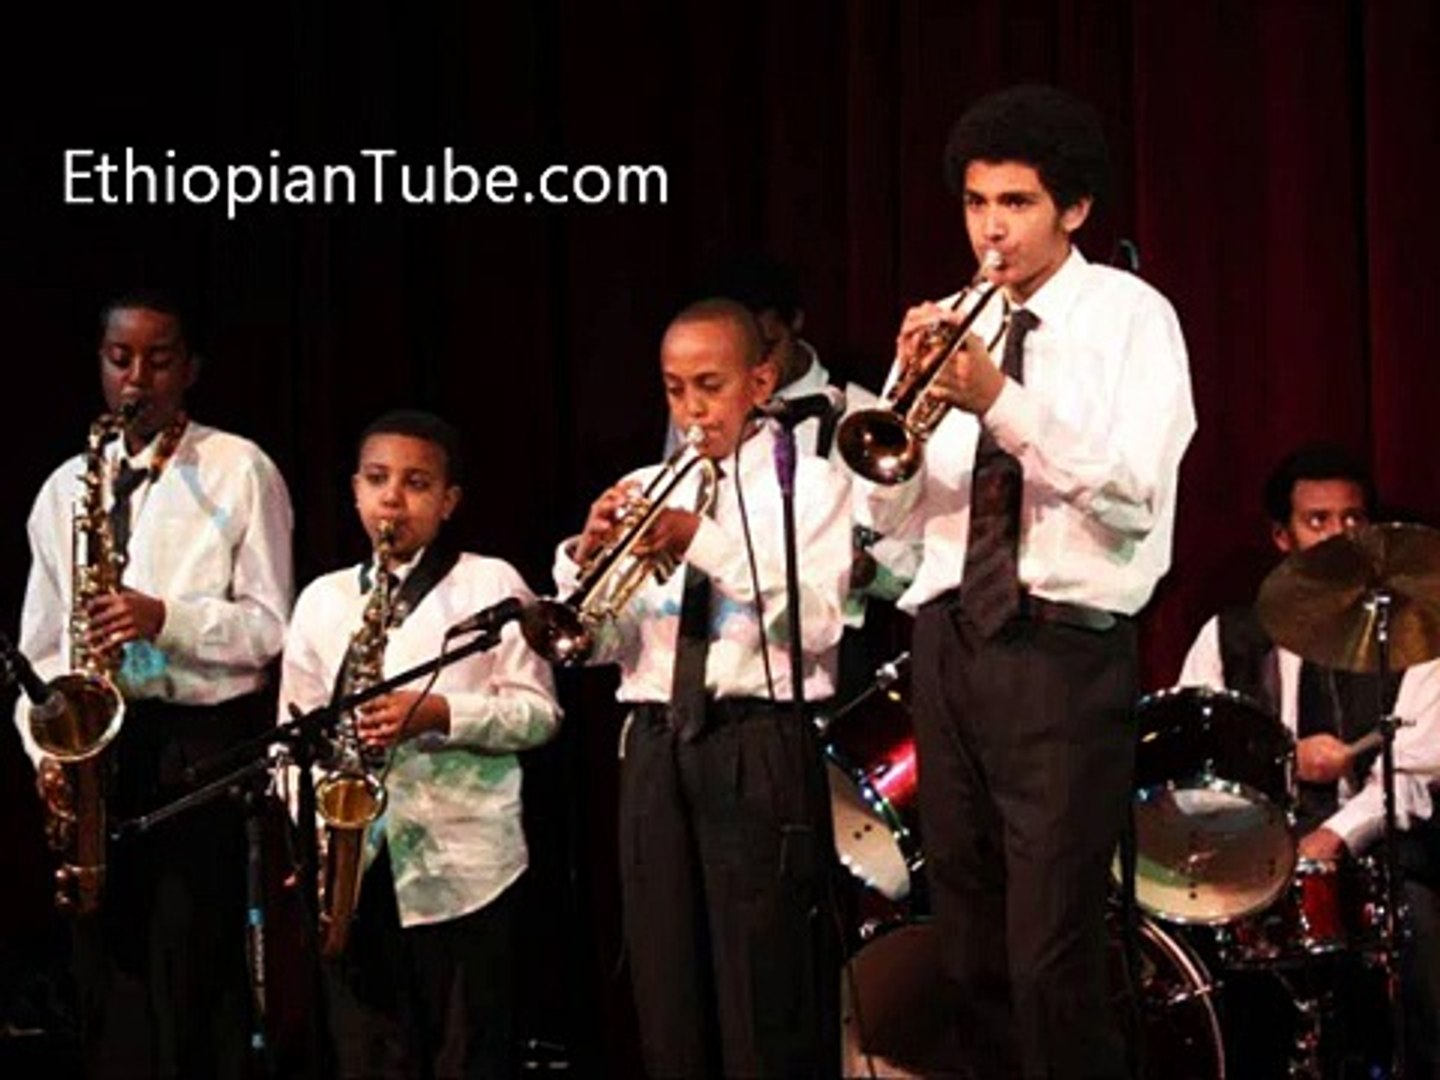 Ethiopia - The Young Ethio Jazz Band ages 10 to 15 bring back traditional Ethiopian jazz - YouTube